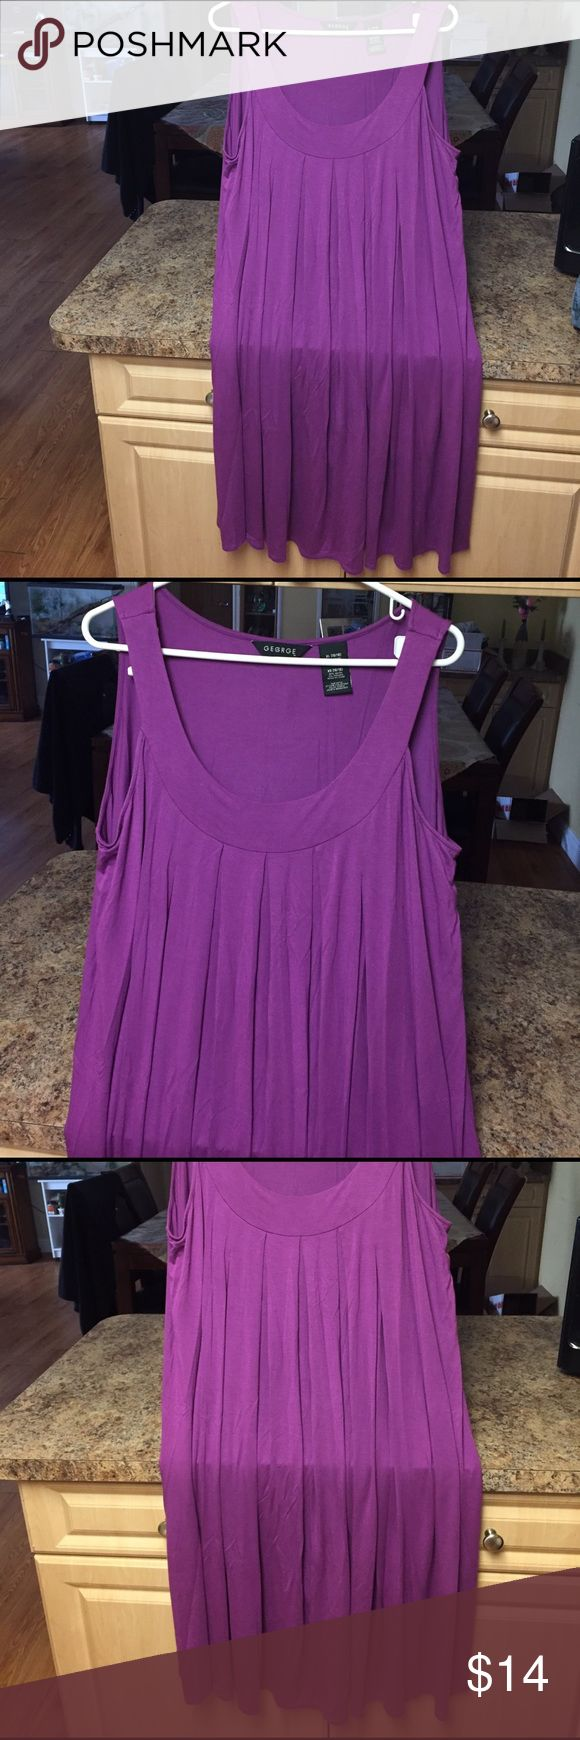 BRAND NEW SLEEVELESS PURPLE SUNDRESS ROUNDED NECK AWESOME COLOR FOR THE NEW SEASON VERY FLOWY ,VERY SOFT George Dresses Midi